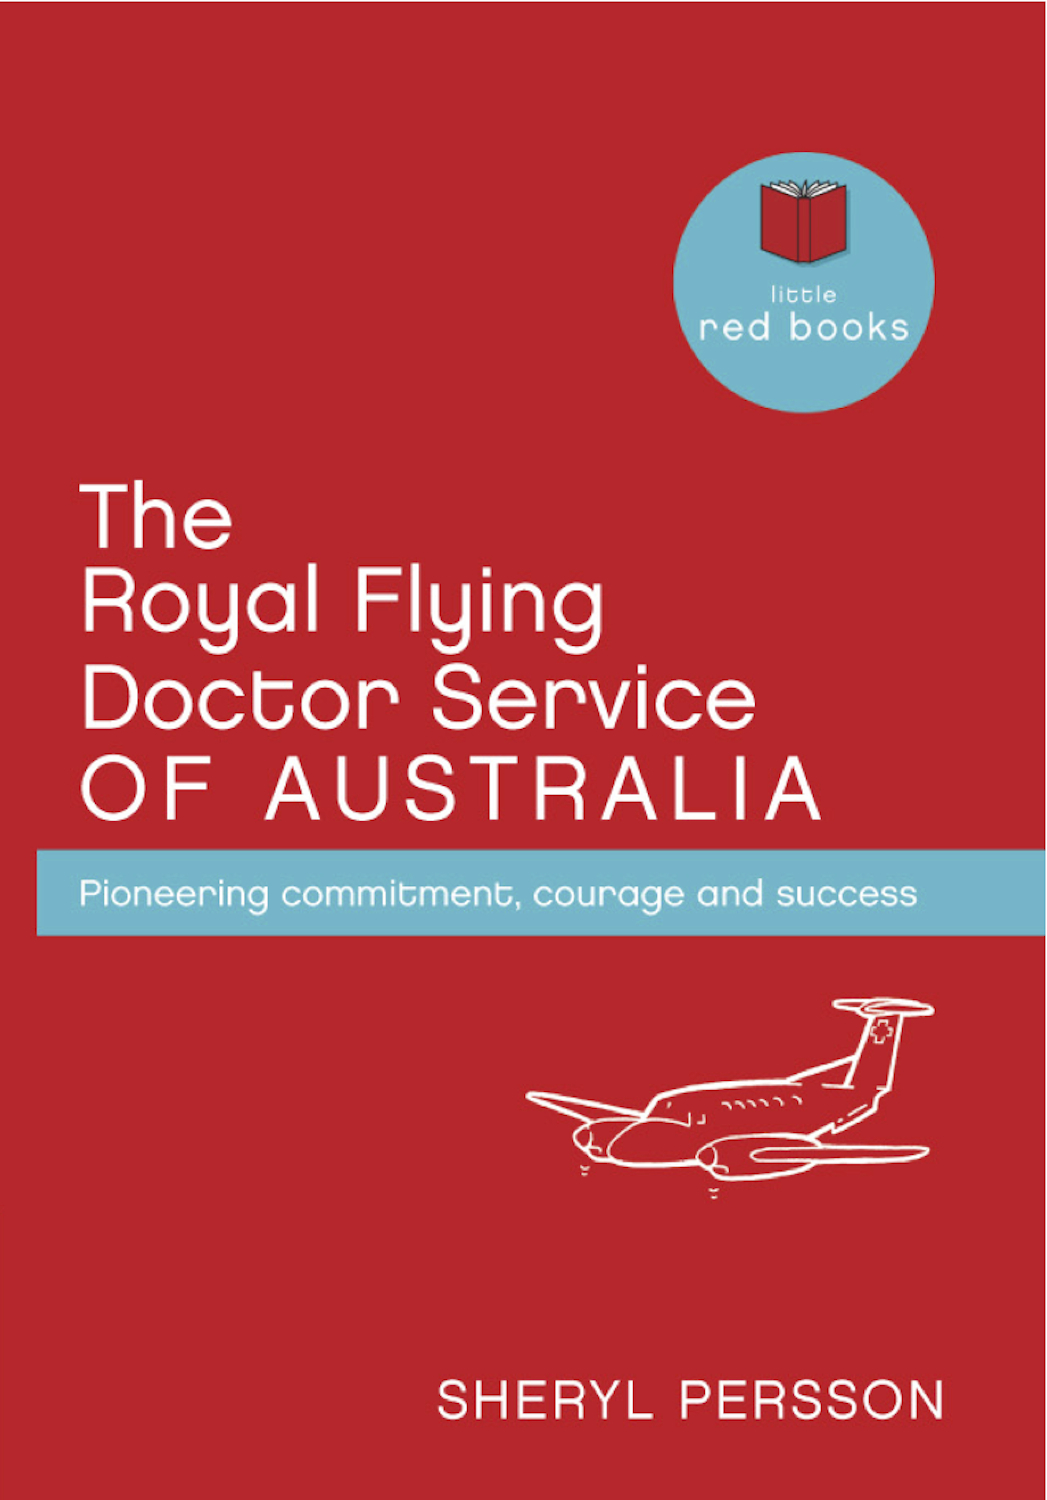 The Royal Flying Doctor Service of Australia: Pioneering commitment, courage and success